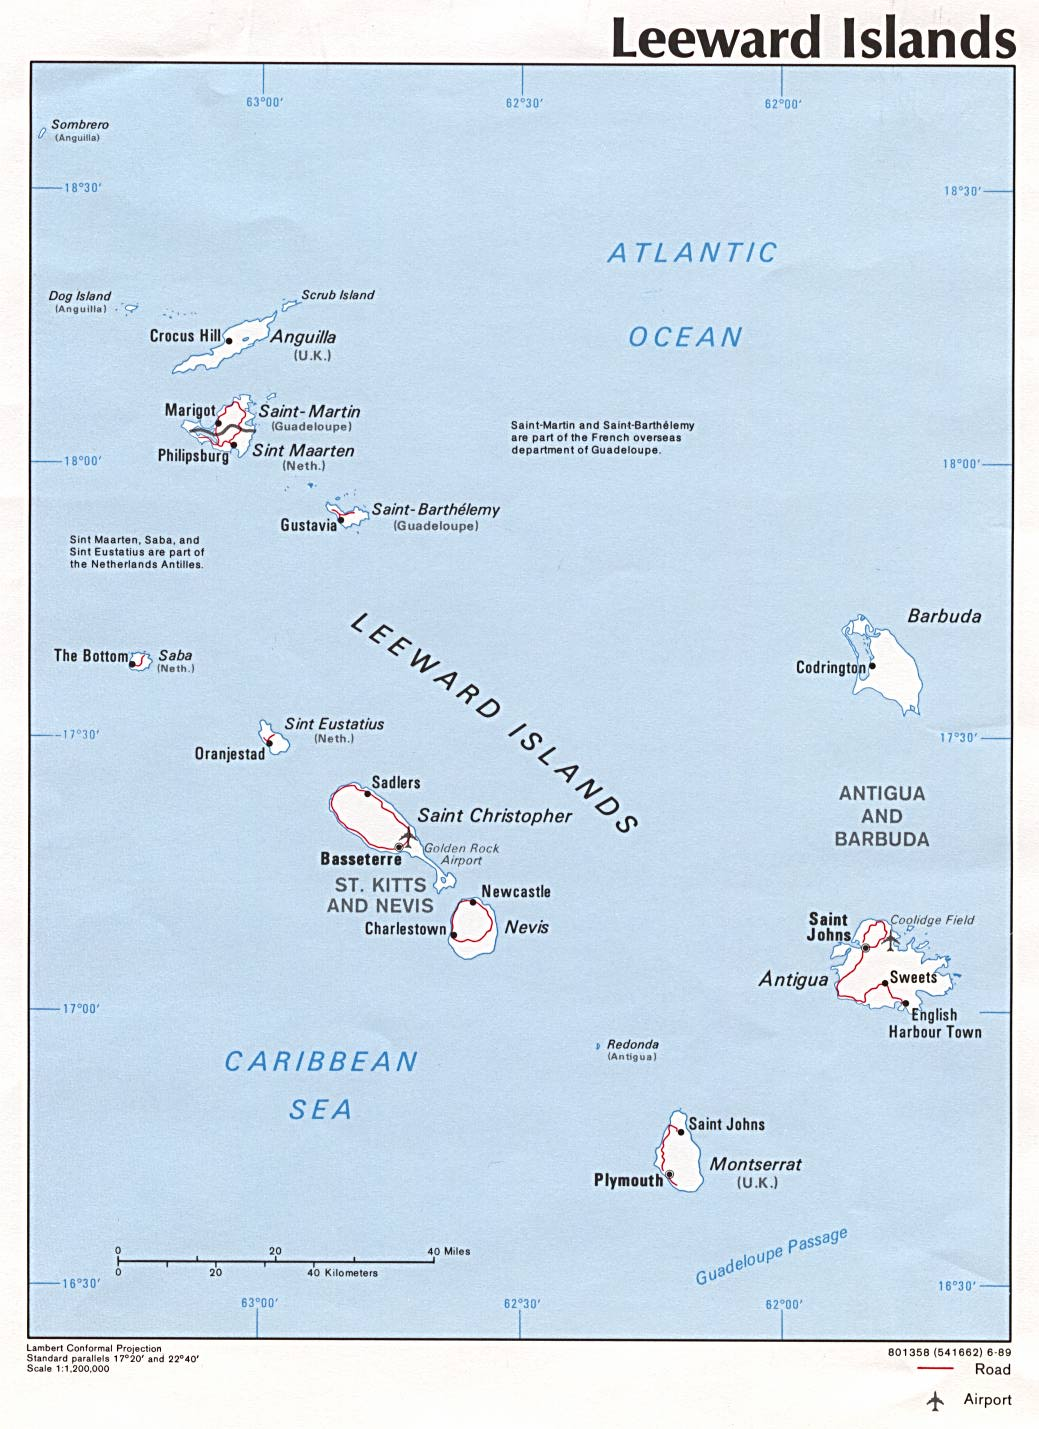 Leeward Islands Political Map